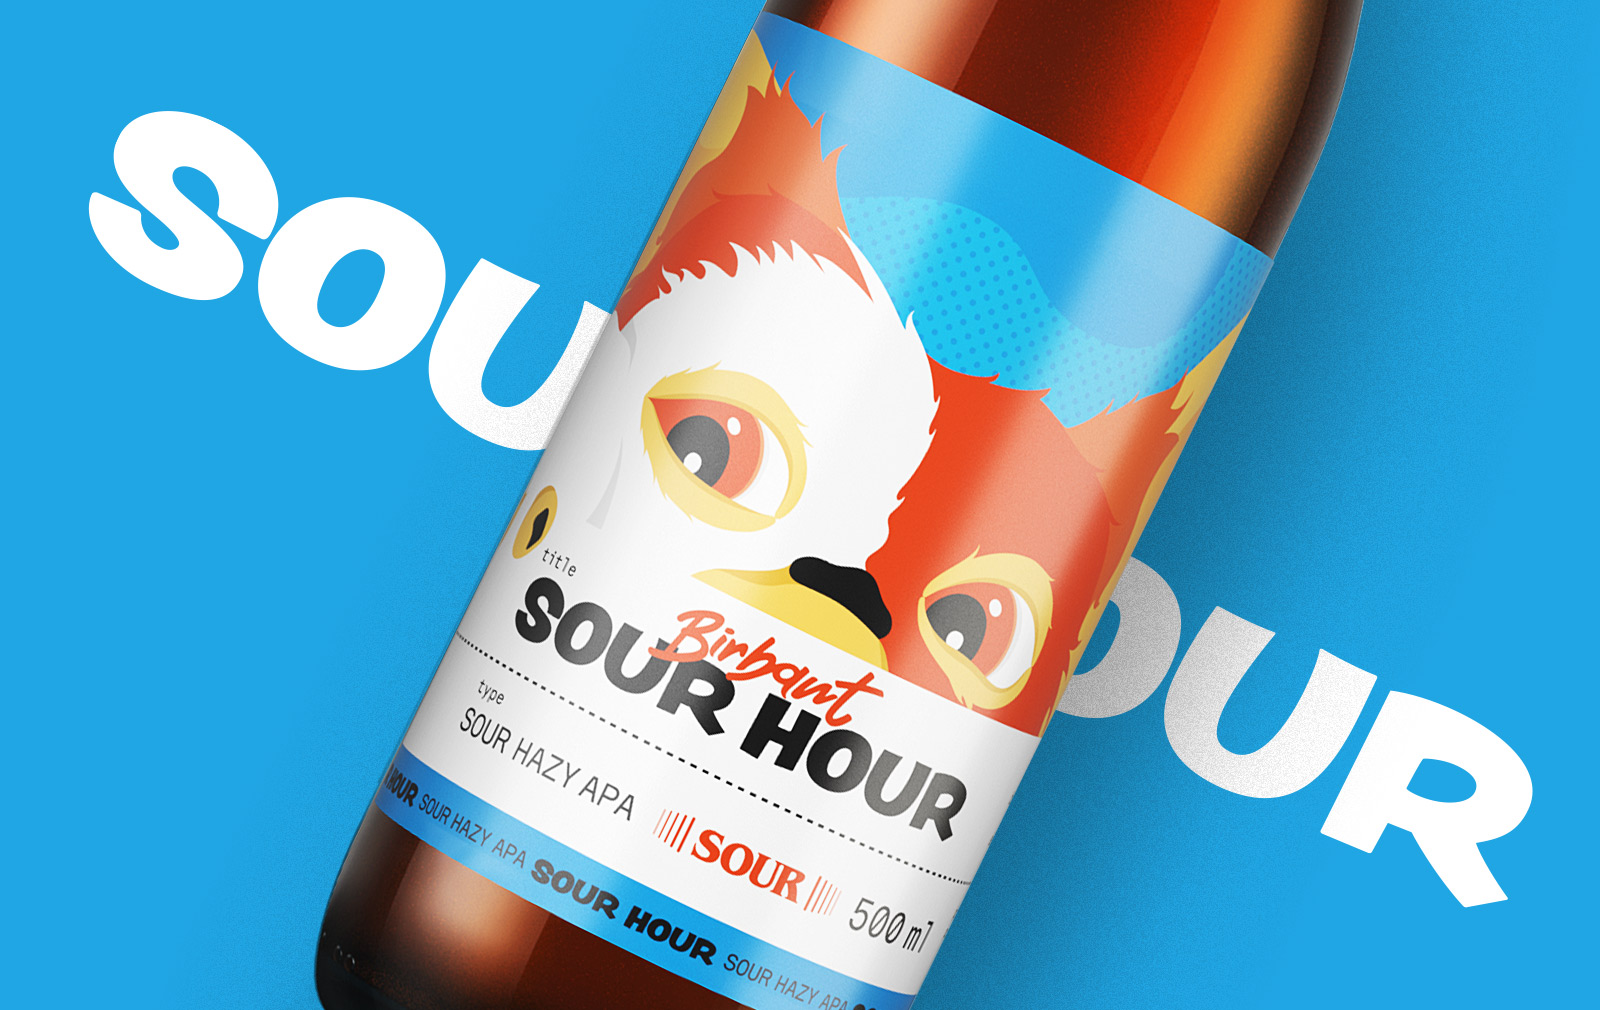 SOUR HOUR Sour Ale